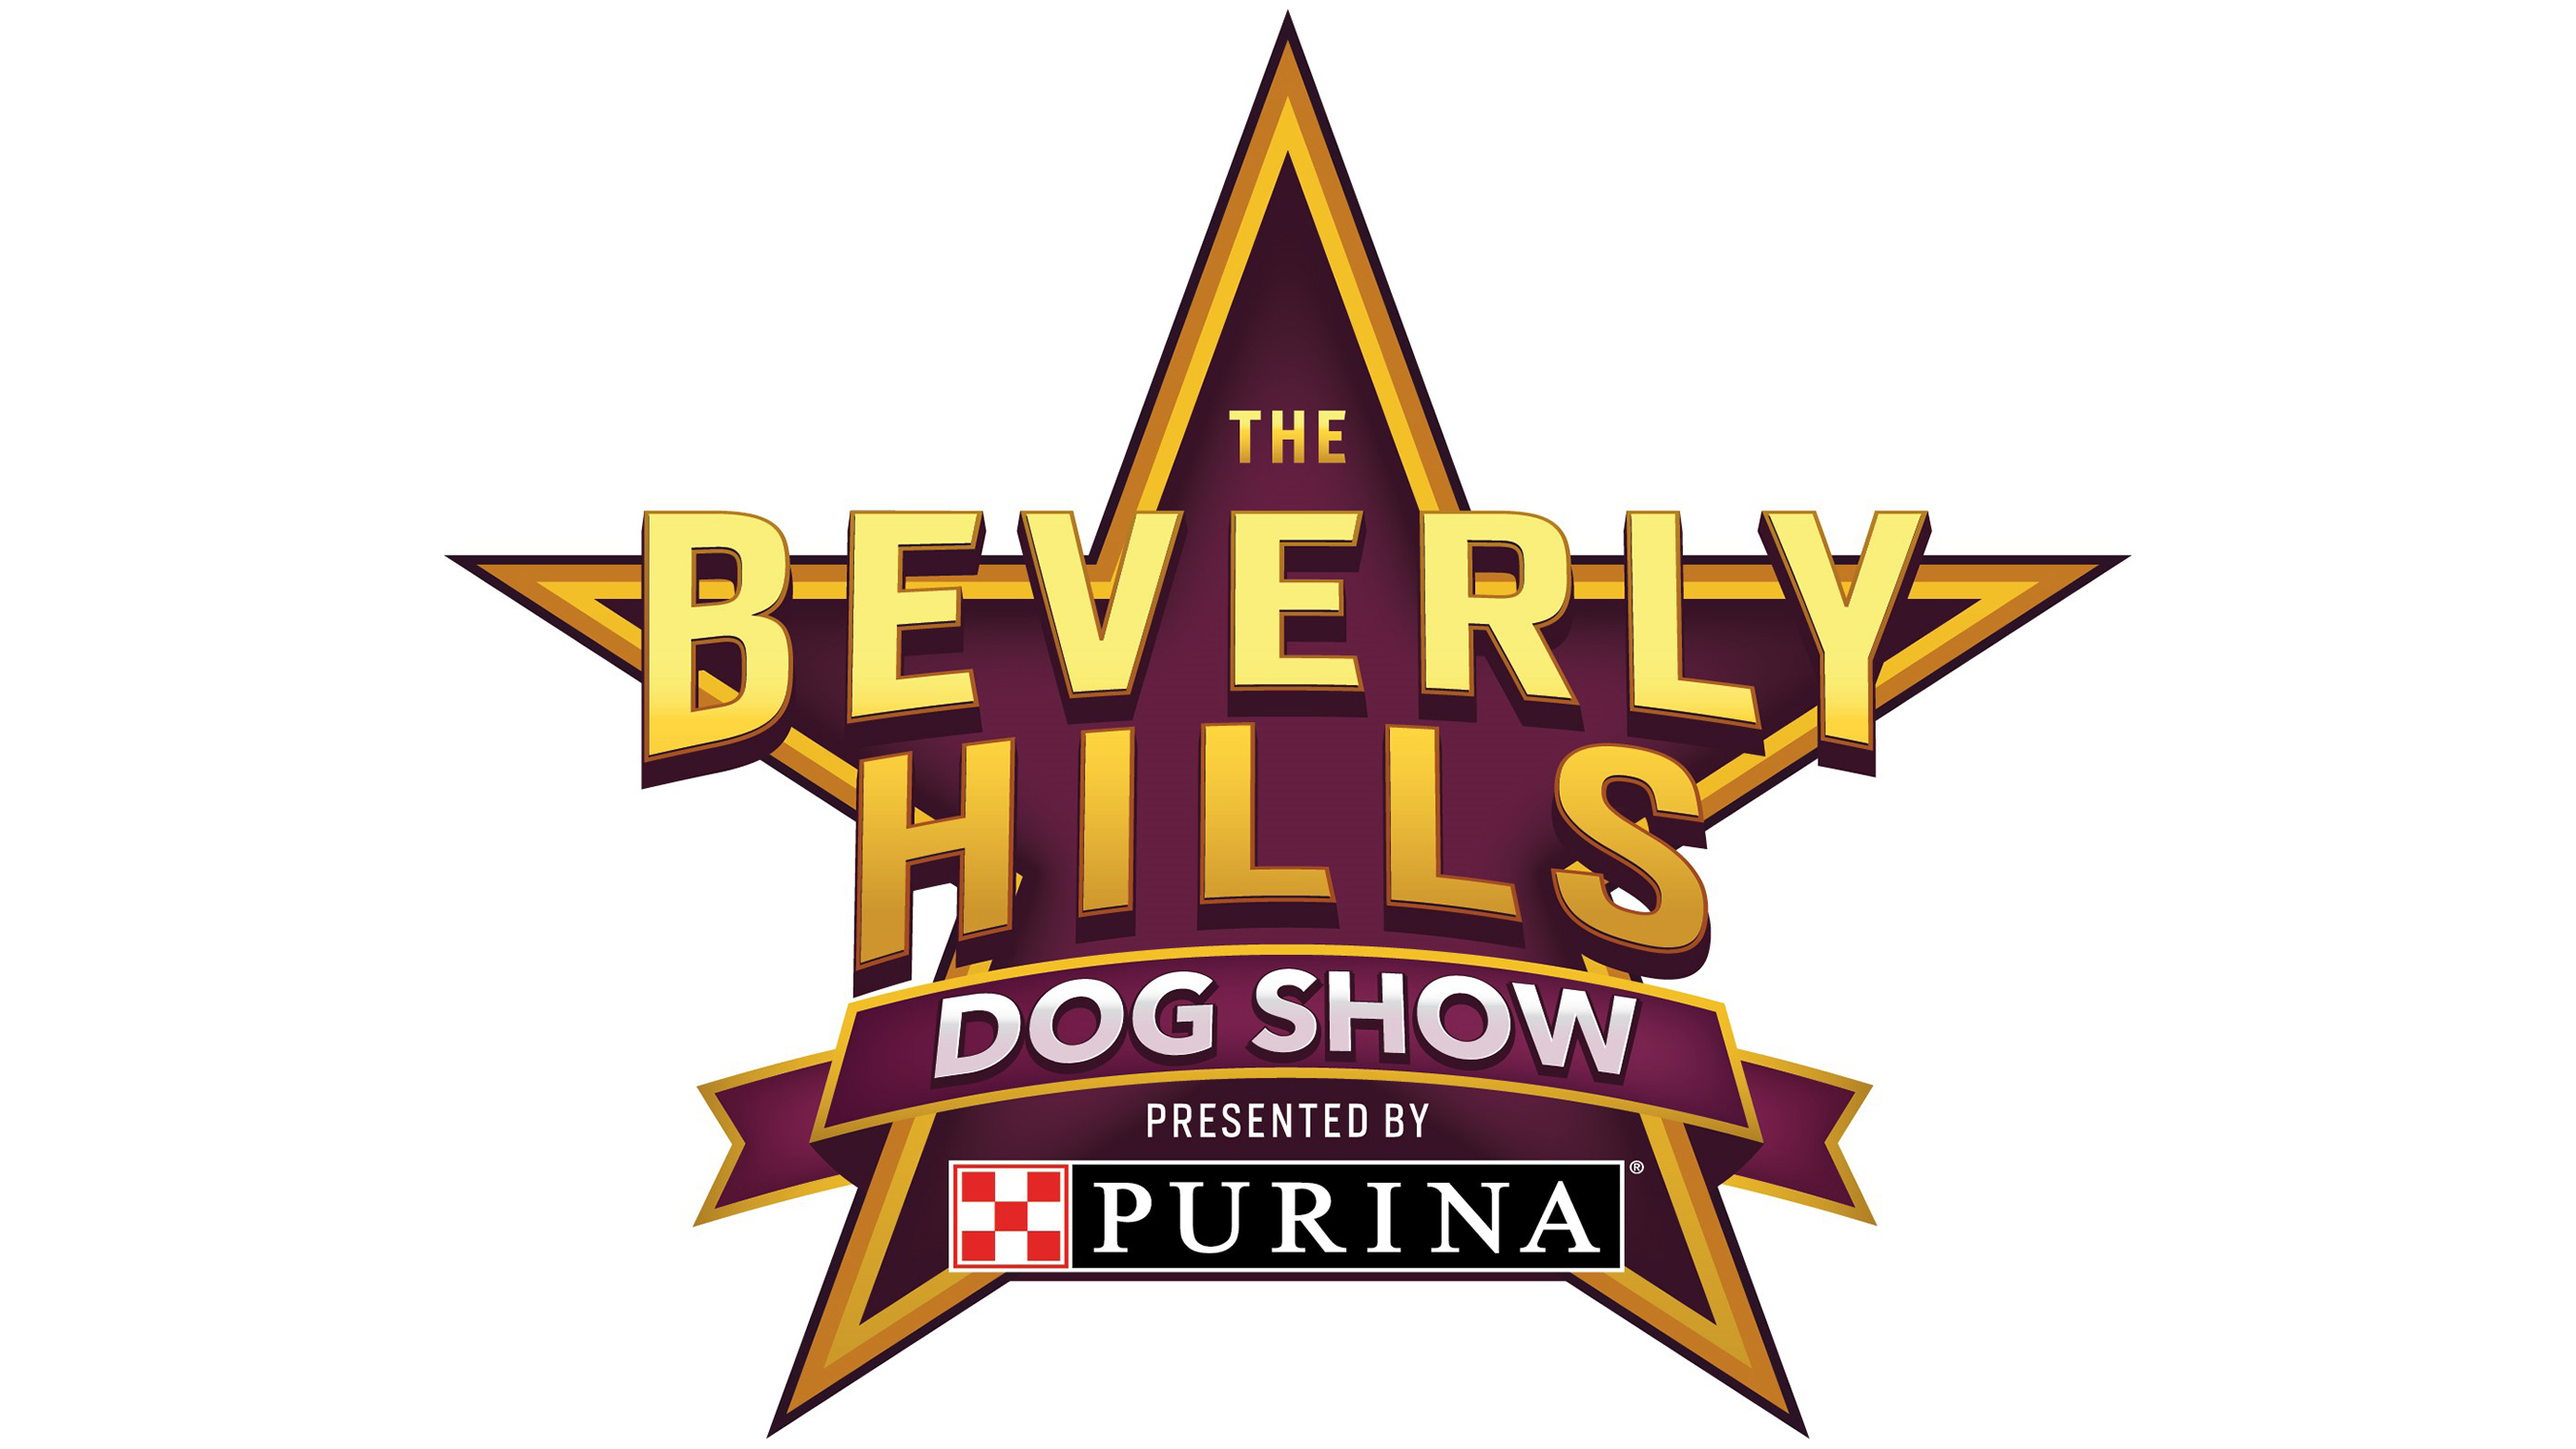 The Beverly Hills Dog Show Presented by Purina will air Sunday, May 17 at 8:00 pm ET/PT and 7:00 pm CT/MT on NBC.